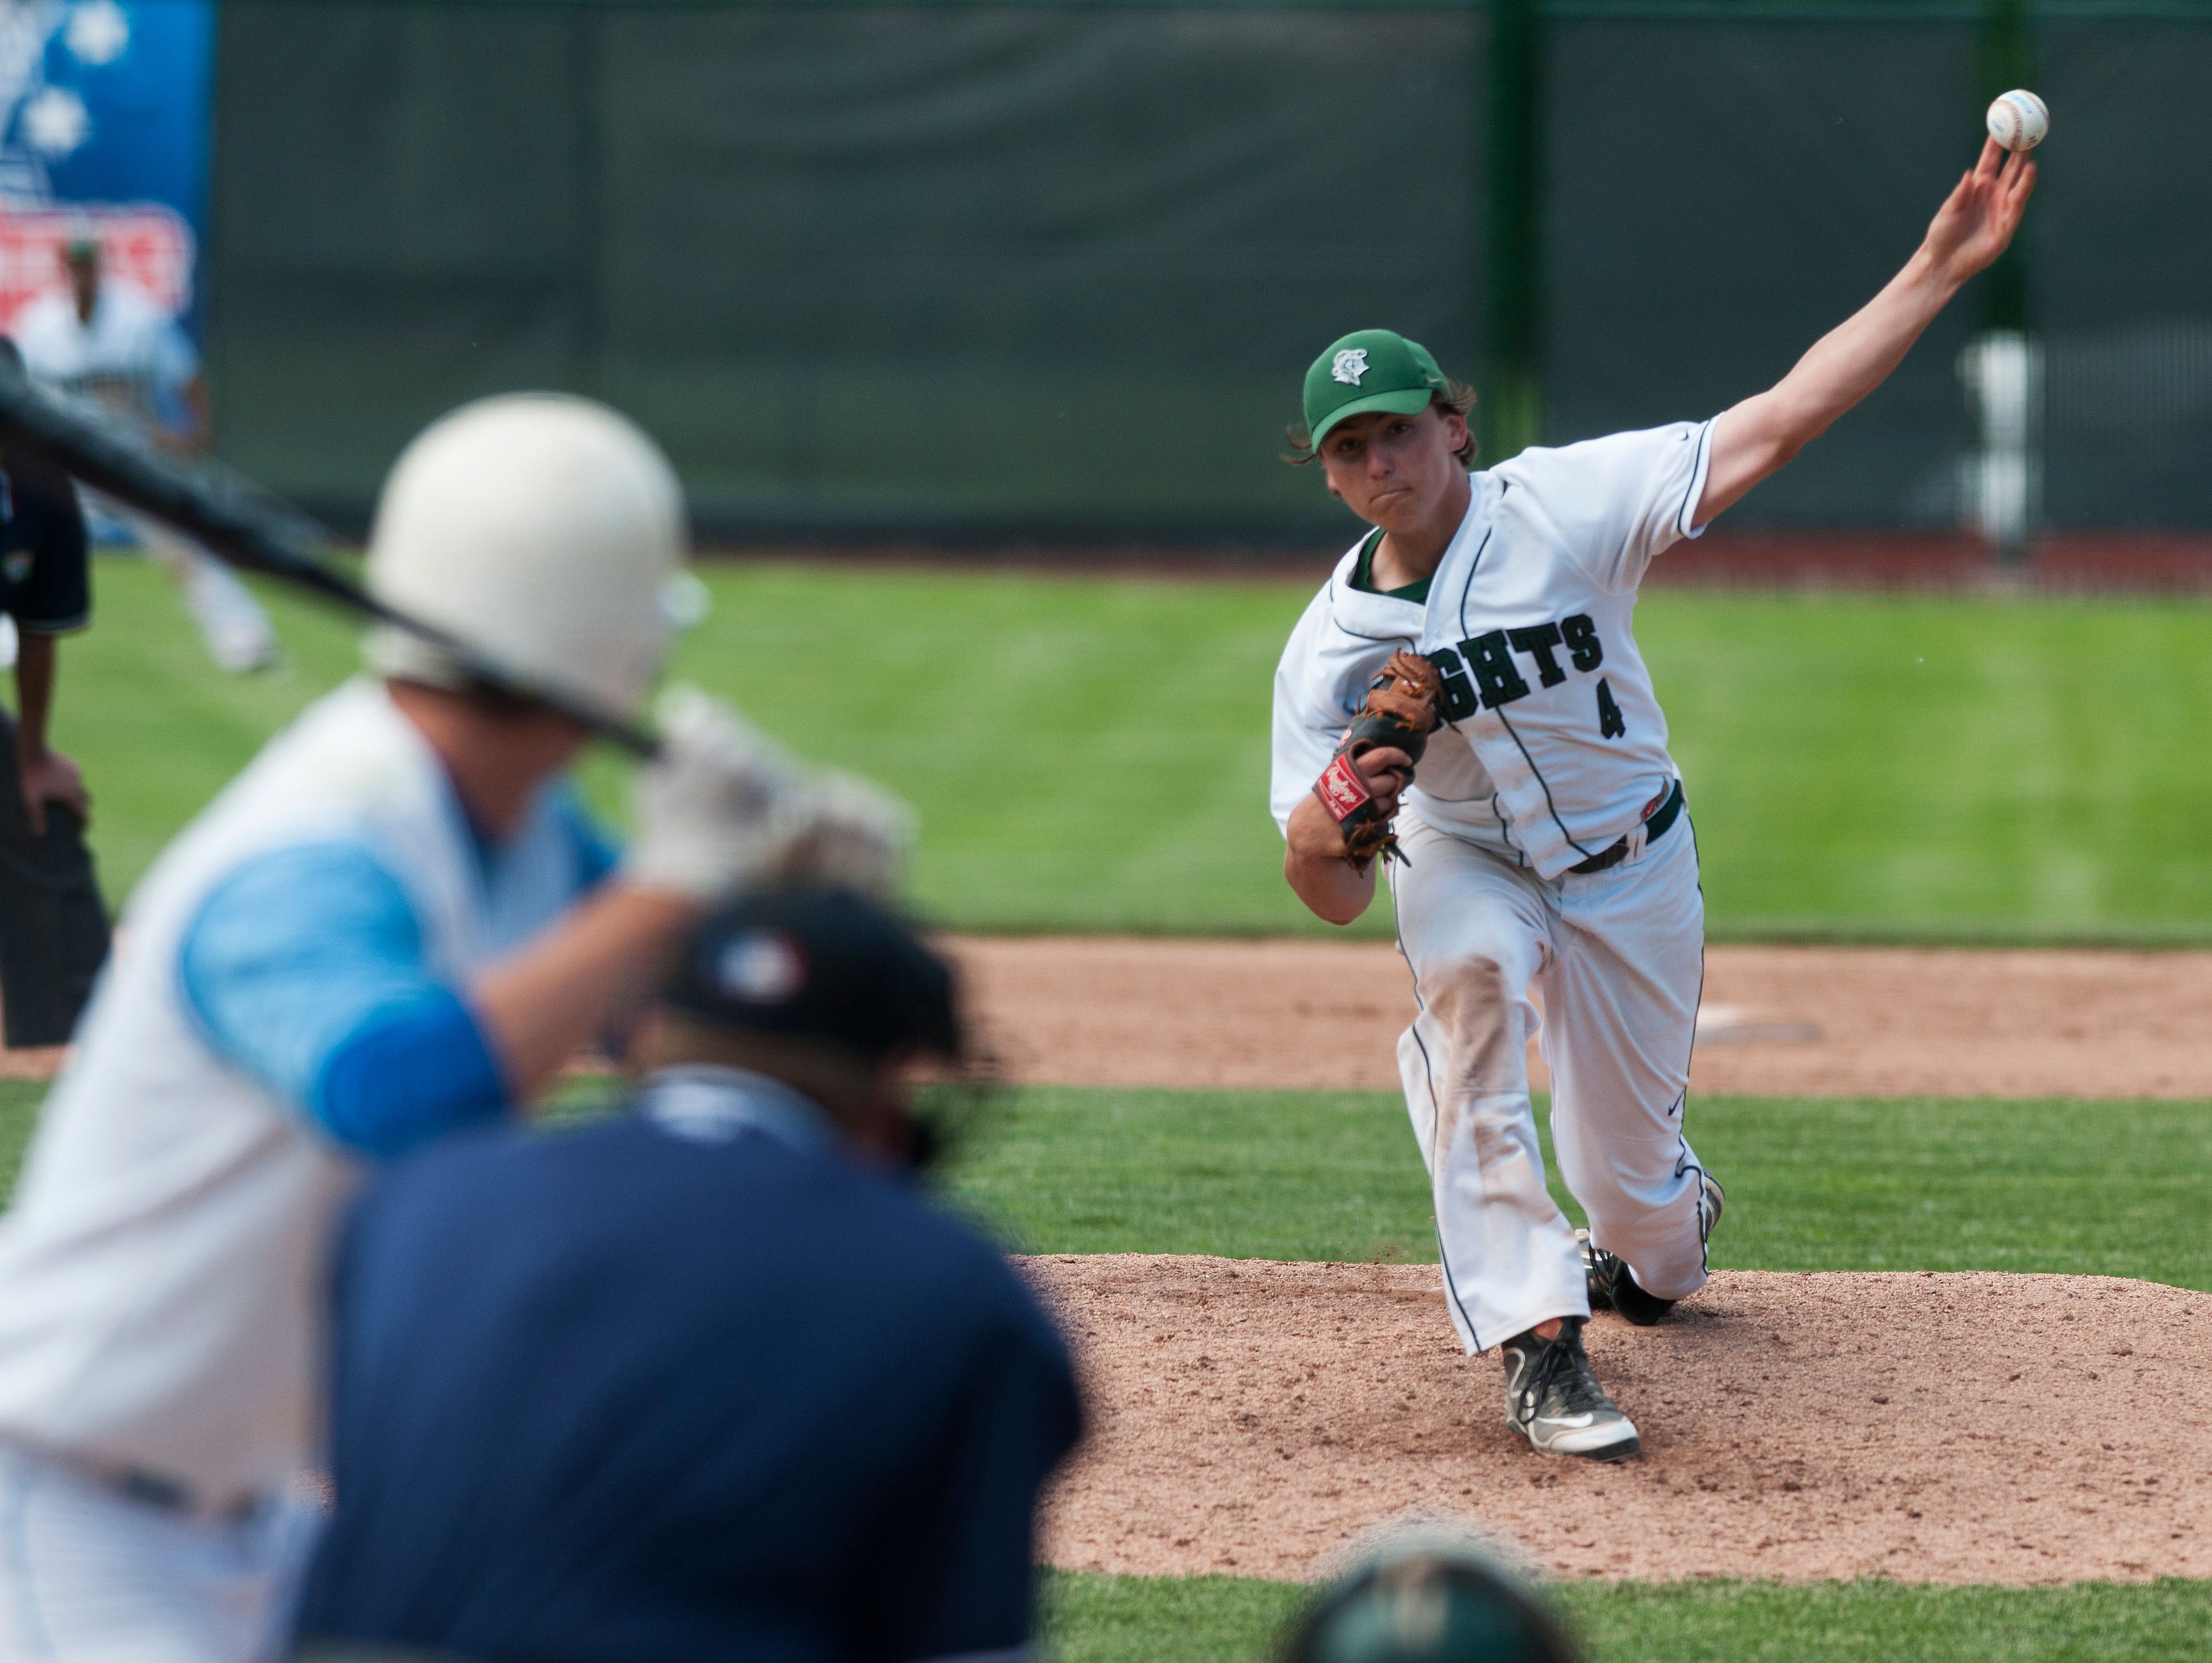 Rice pitcher Will Hesslink (4) delivers a pitch during the Division I high school baseball championship against South Burlington at Centennial Field last year.